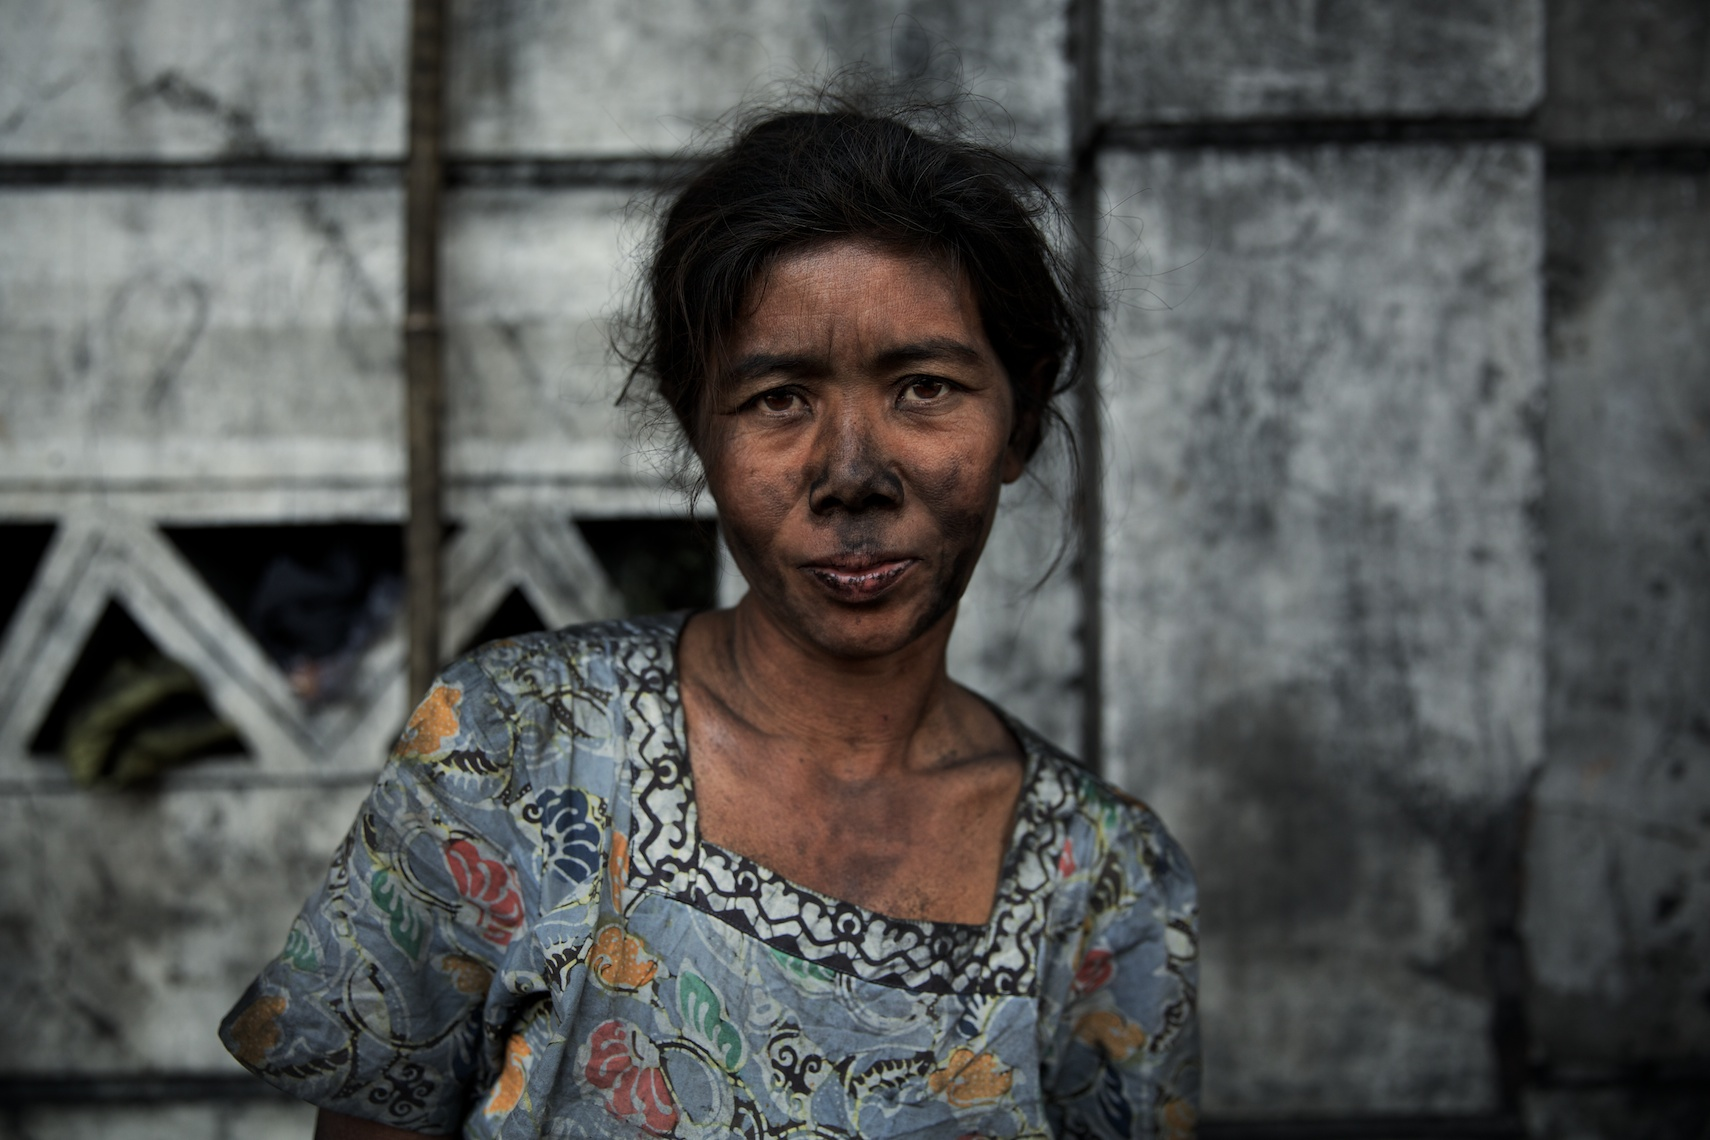 Portraits of Burma - with Steve Mccurry